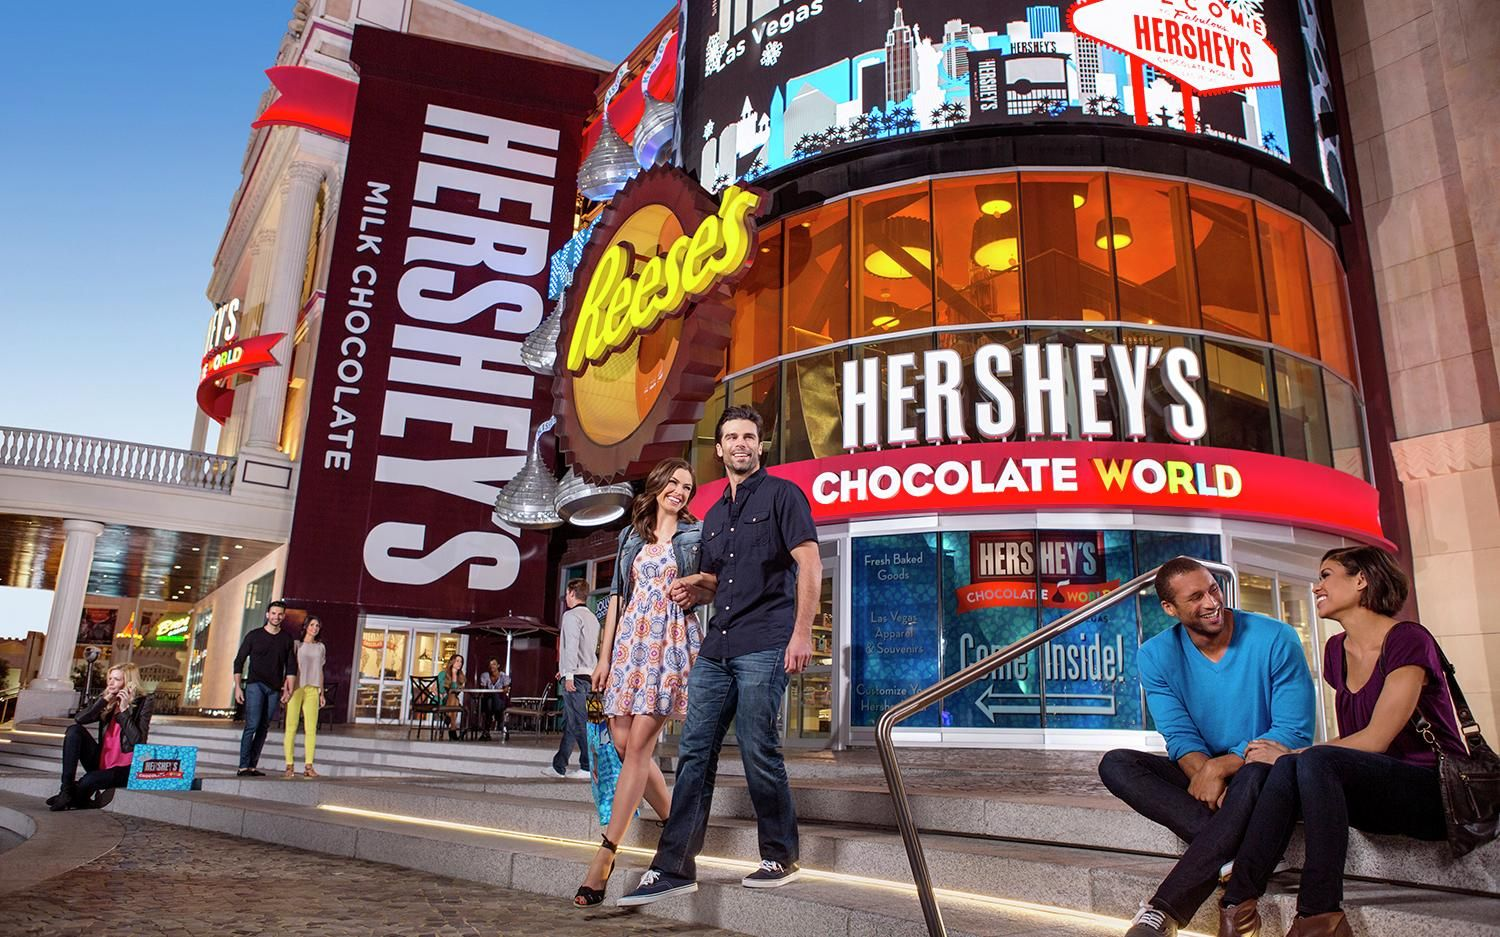 HERSHEY'S CHOCOLATE WORLD Las Vegas store is a twostory